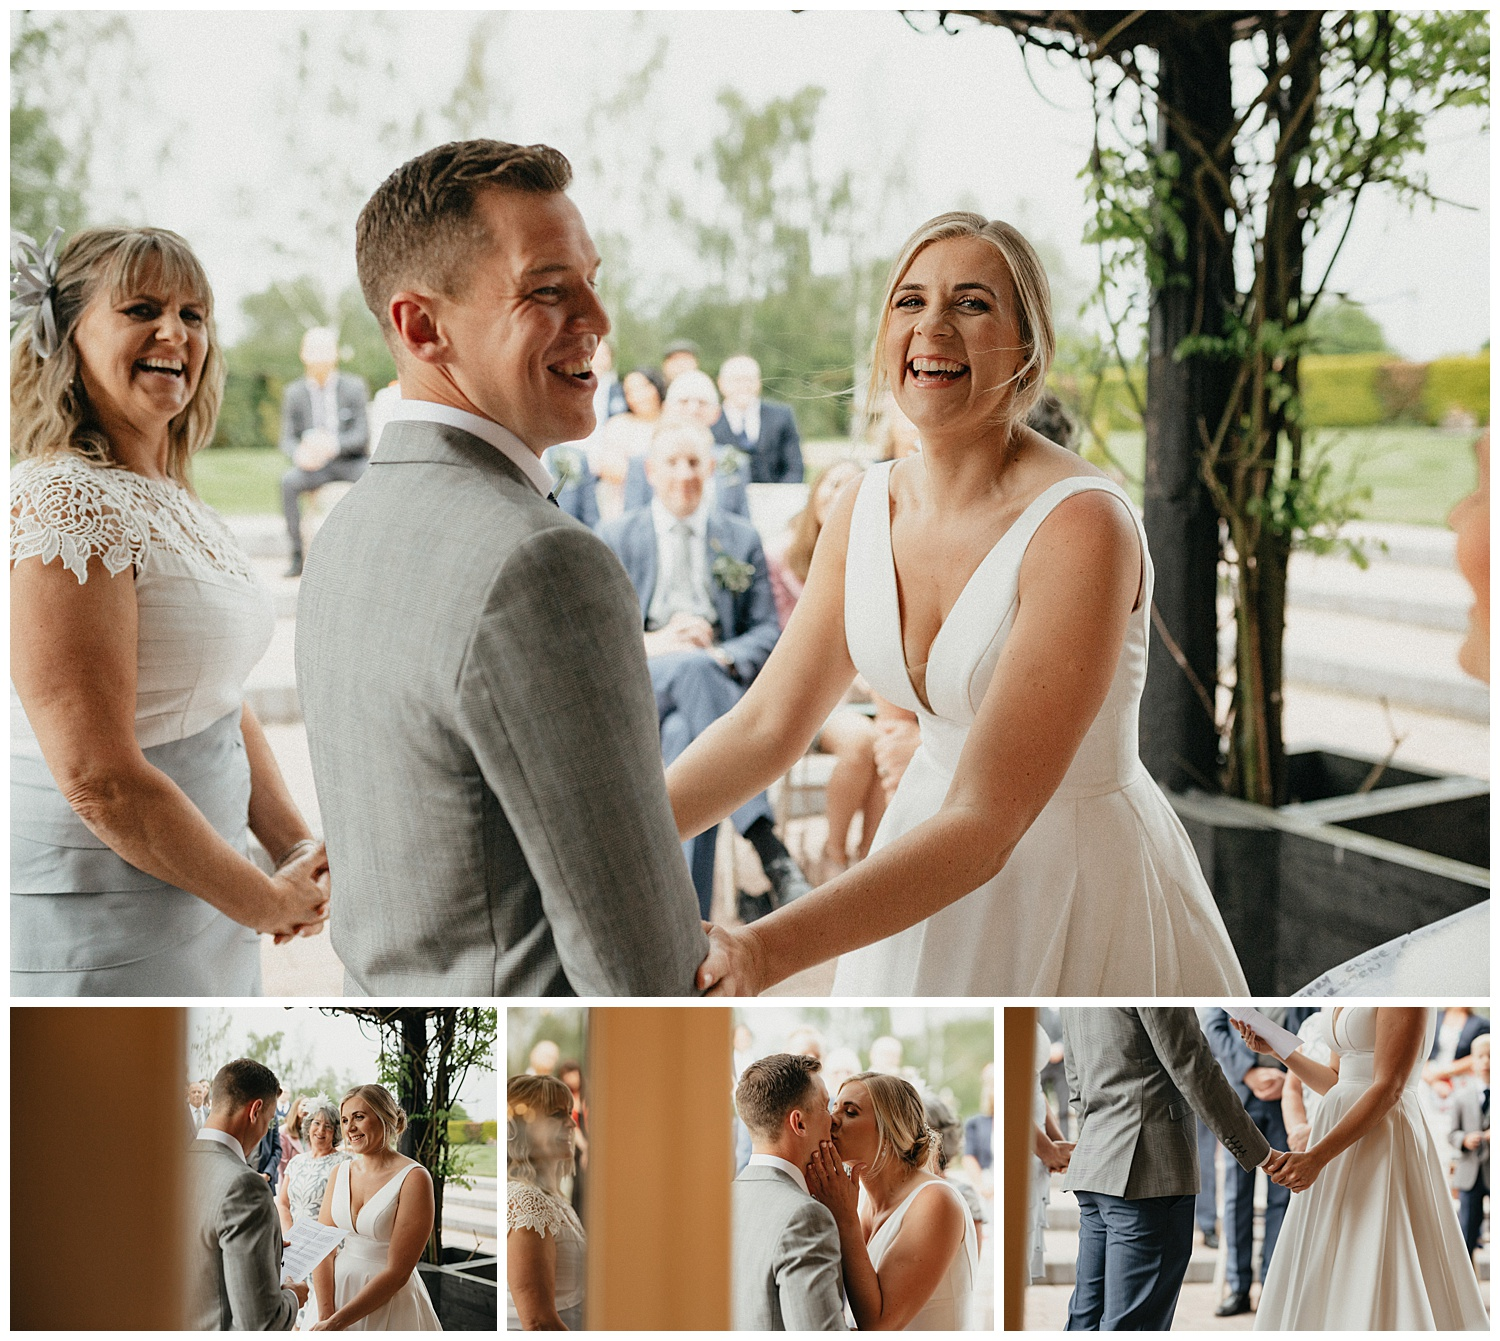 Weddings-at-Crondon-Park-the-bride-and-groom-laugh-and-kiss